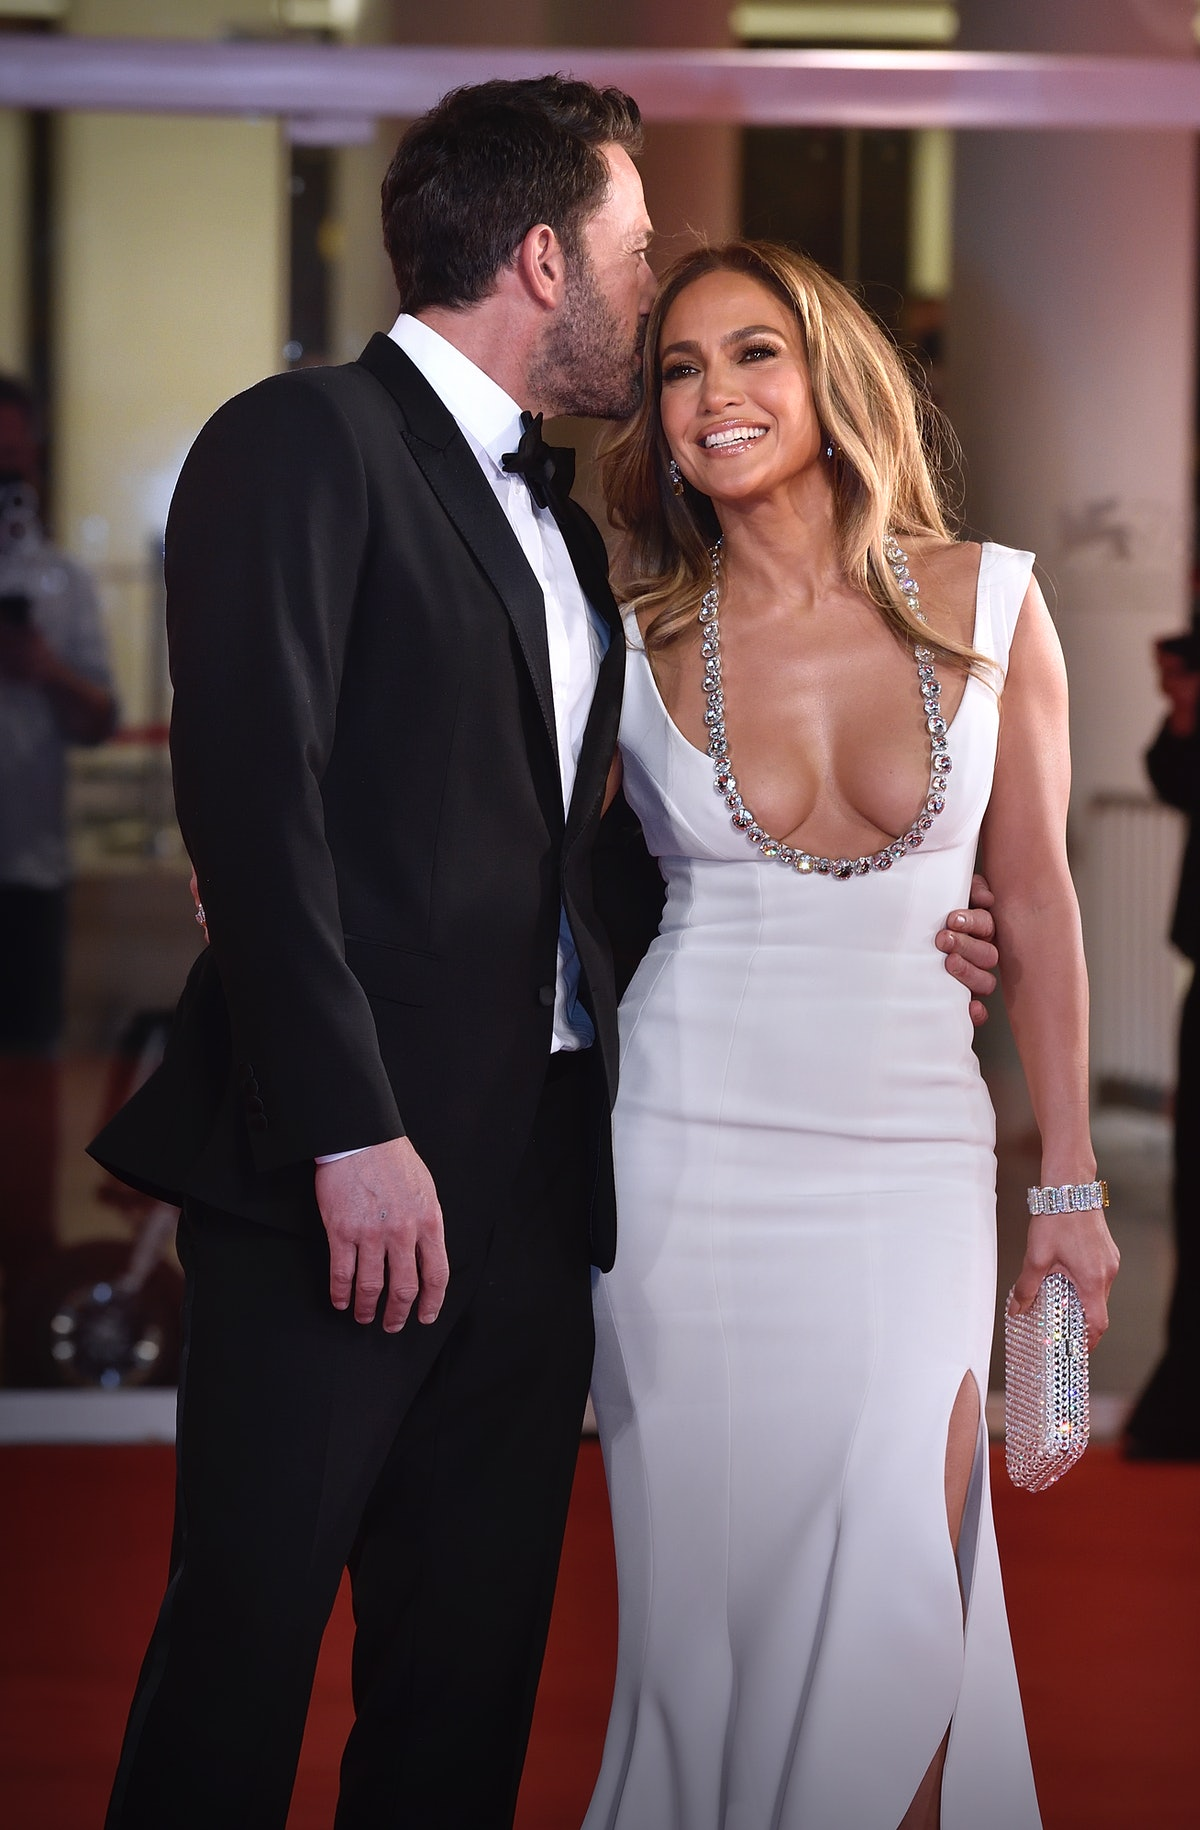 Ben Affleck and Jennifer Lopez's body language at the Venice Film Festival included some sweet momen...